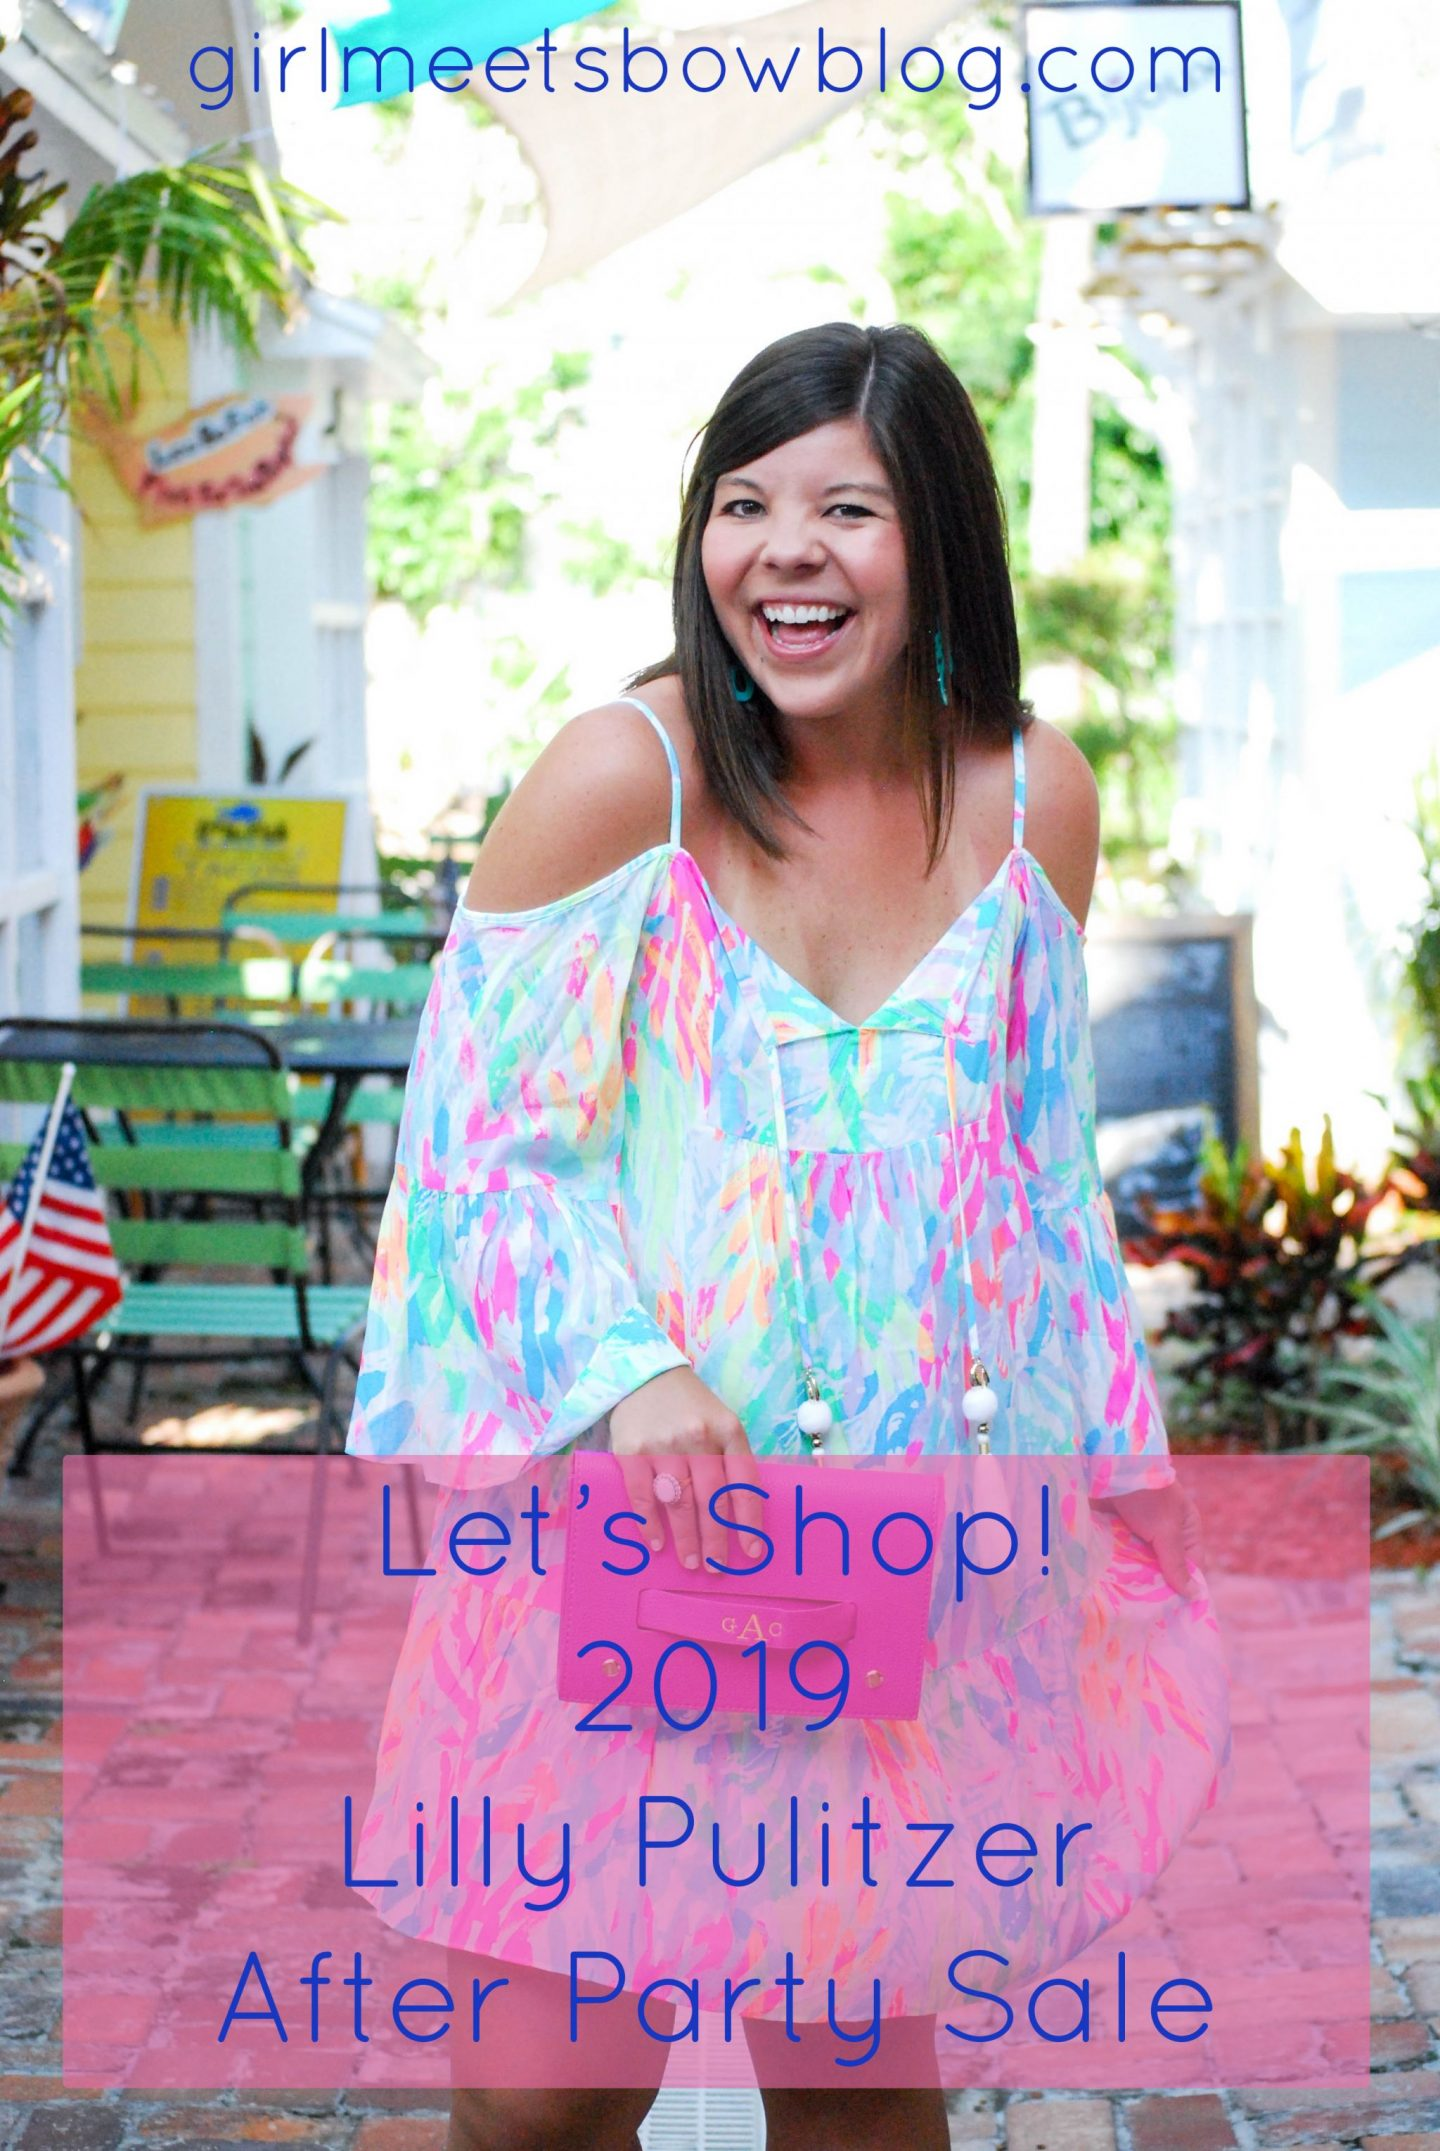 9467c5c0c6 It's here it's here- the very best & most fun day of the year starts at  8am!!! It's the Lilly Pulitzer After Party Sale!!! This is the day that  Lilly-loving ...